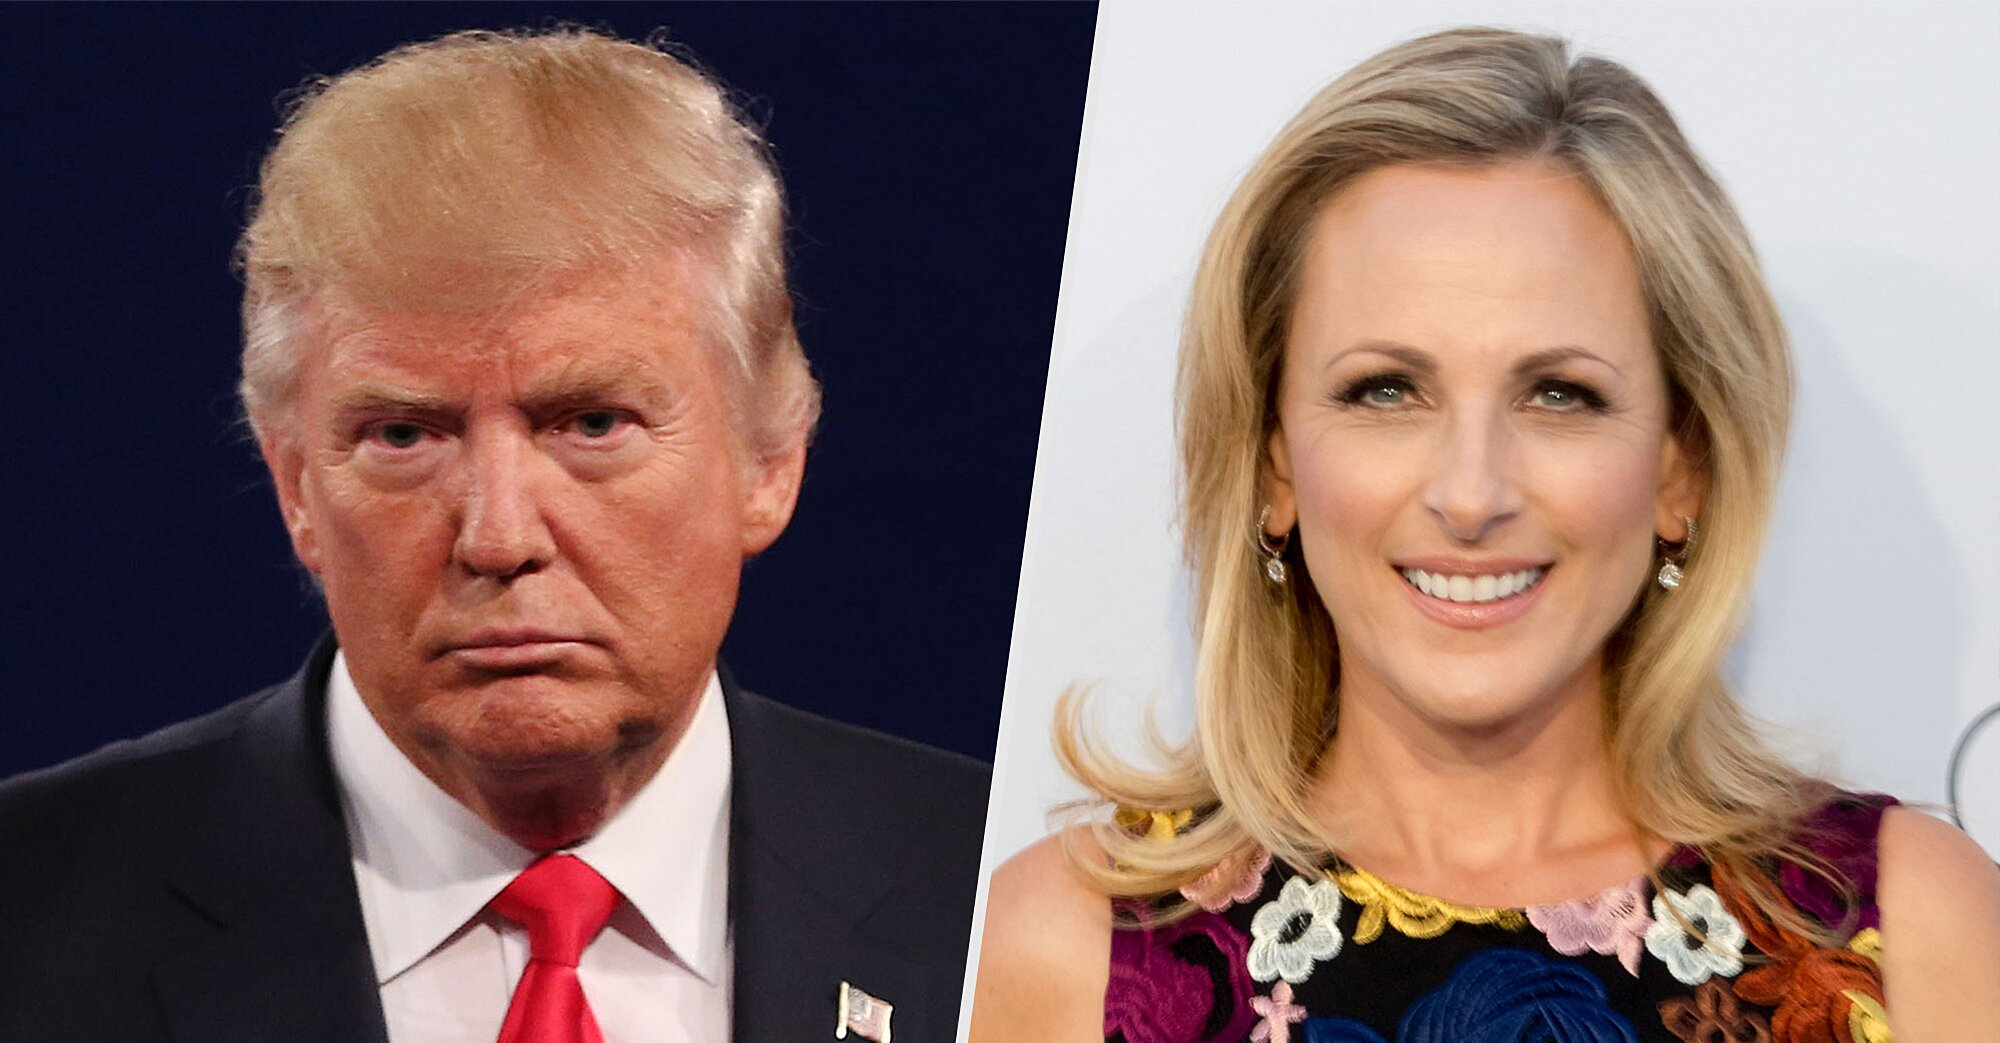 'It's Unfathomable' Trump's COVID-19 Briefings Lack Sign Language Interpreters, Marlee Matlin Says